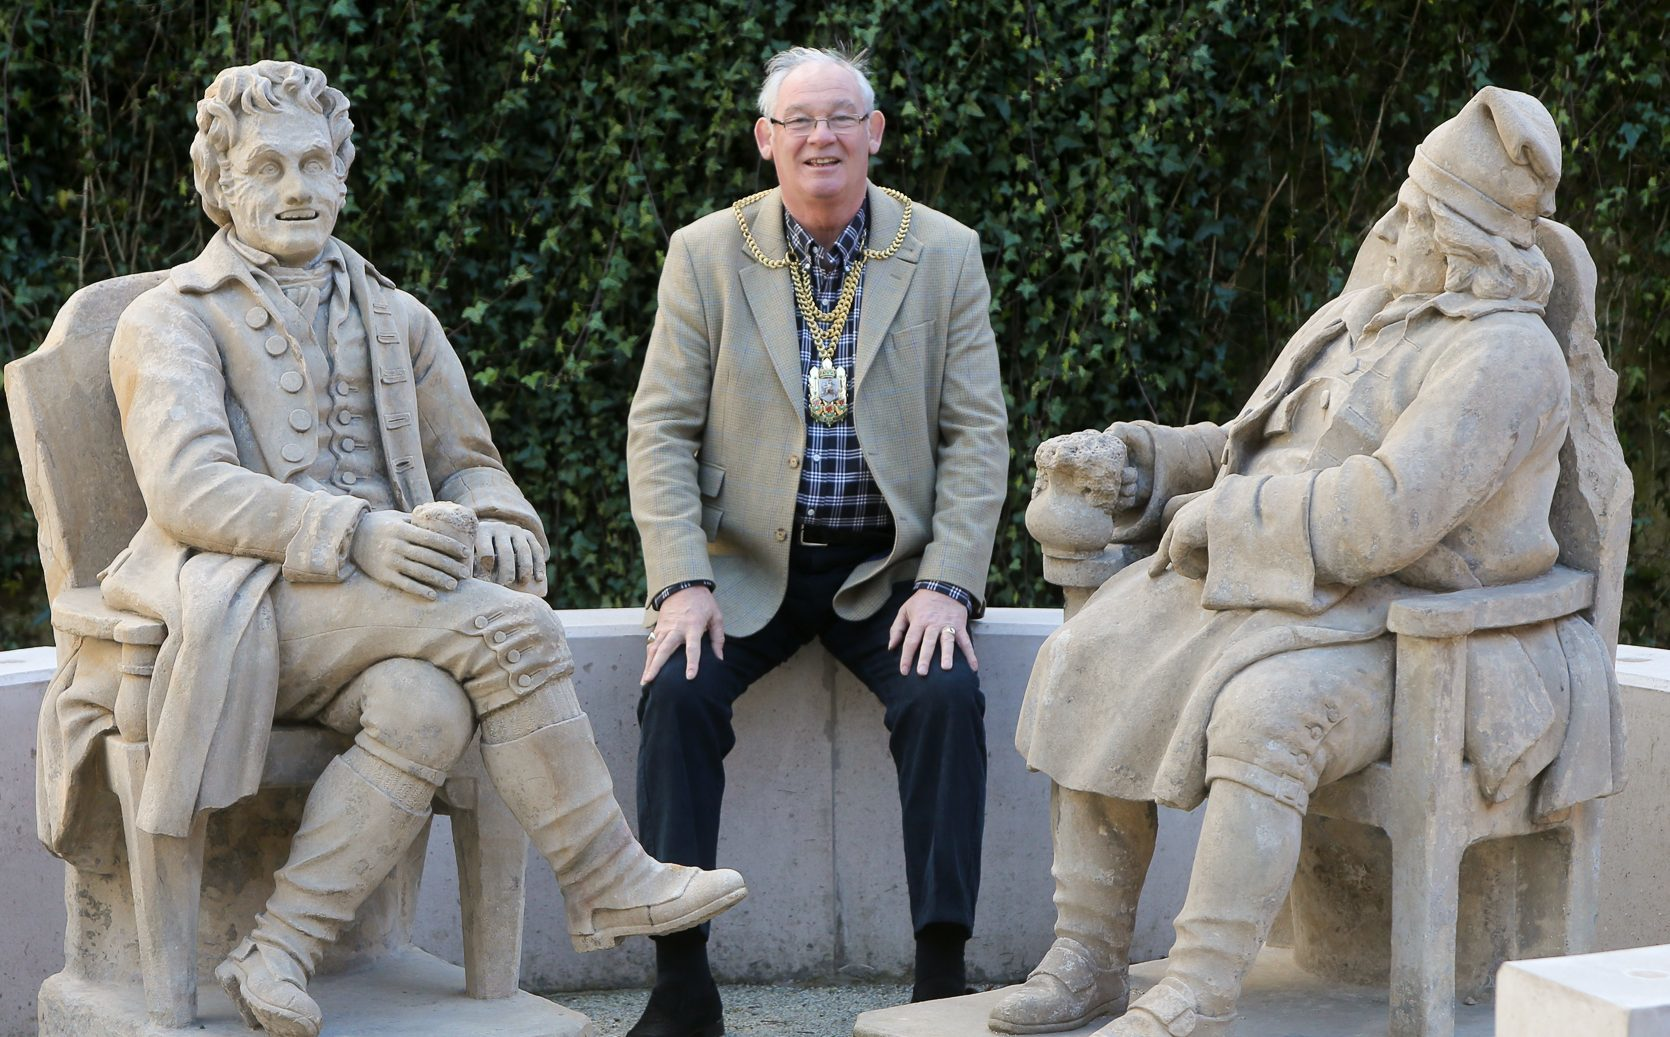 The Provost meets Tam O'Shanter and Soutar Johnnie in the museum gardens.